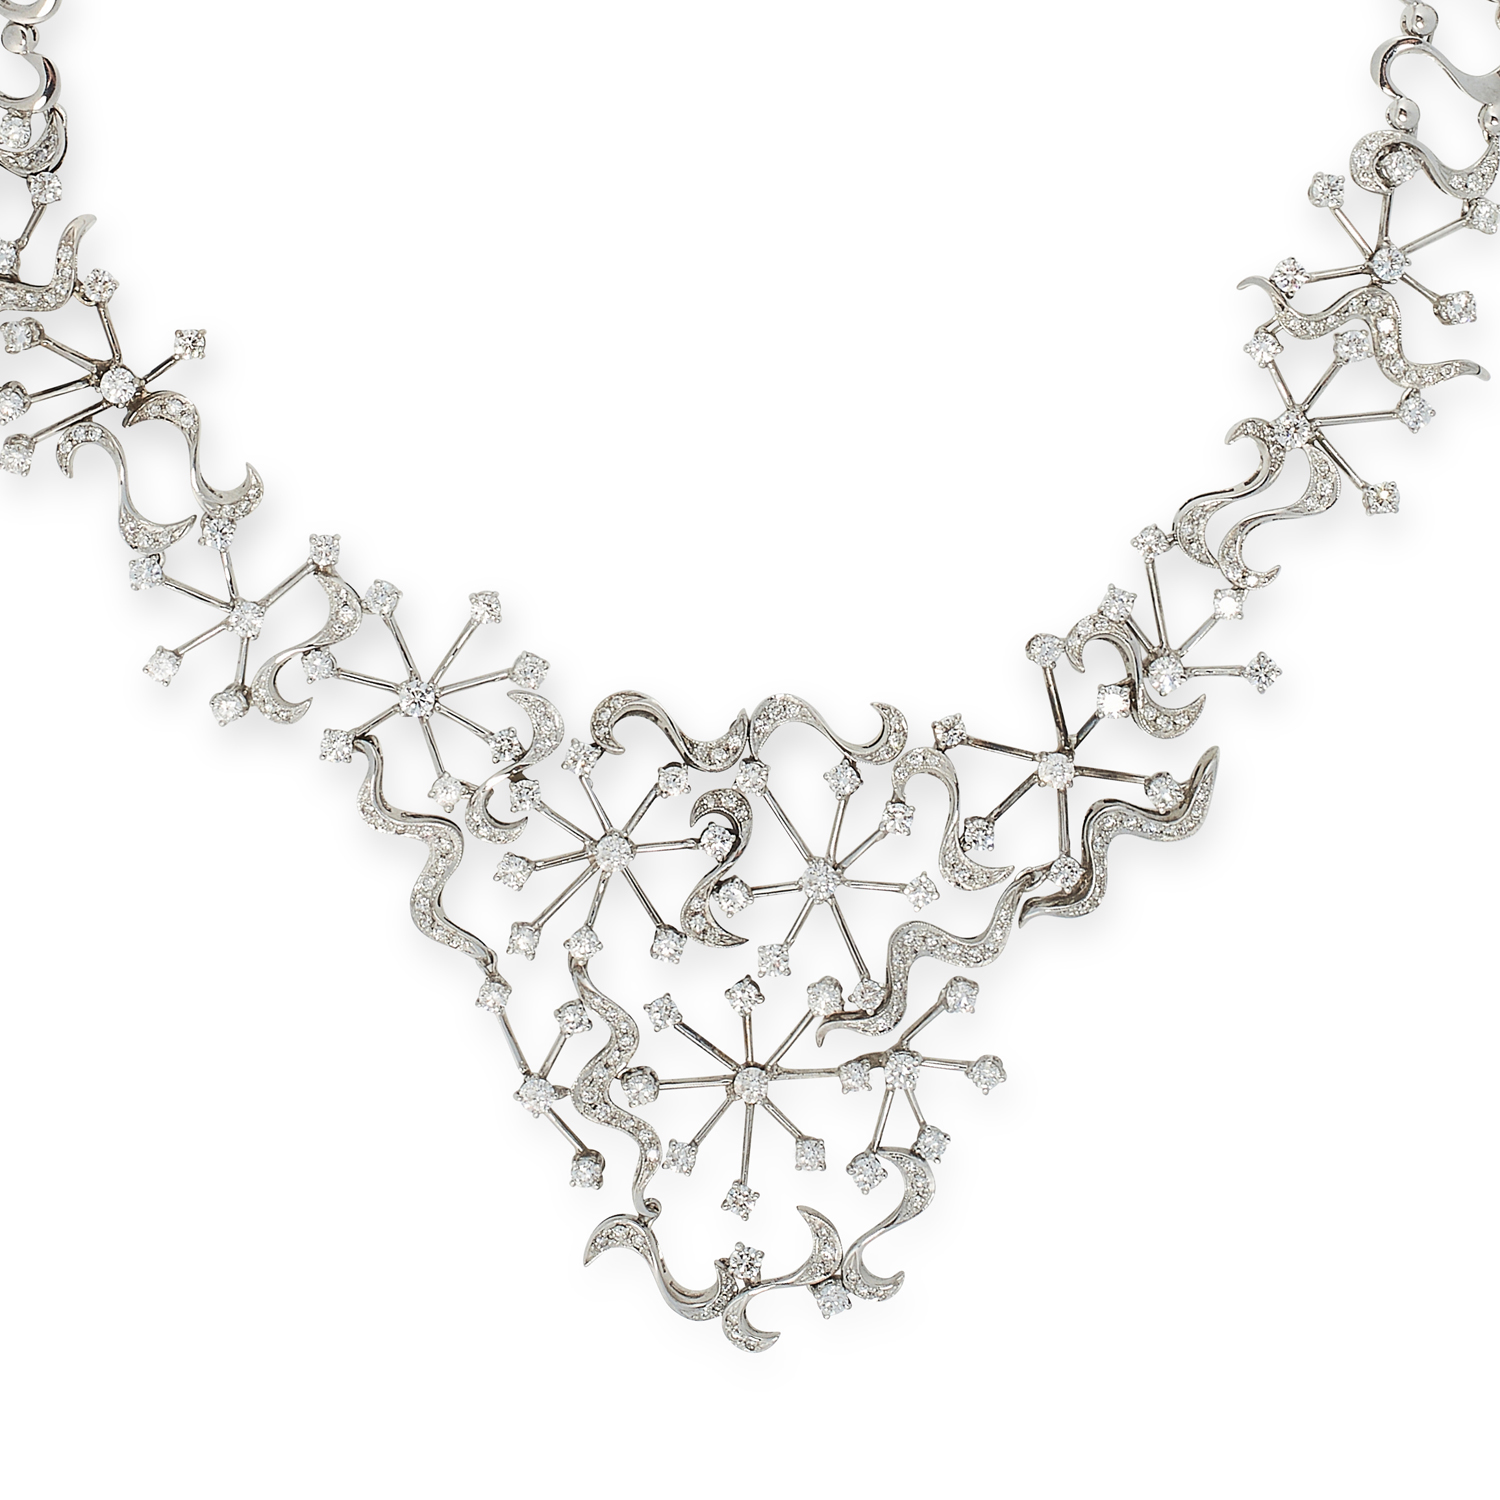 A DIAMOND COLLAR NECKLACE in 18ct white gold, in scrolling open framework design set with round - Image 2 of 2